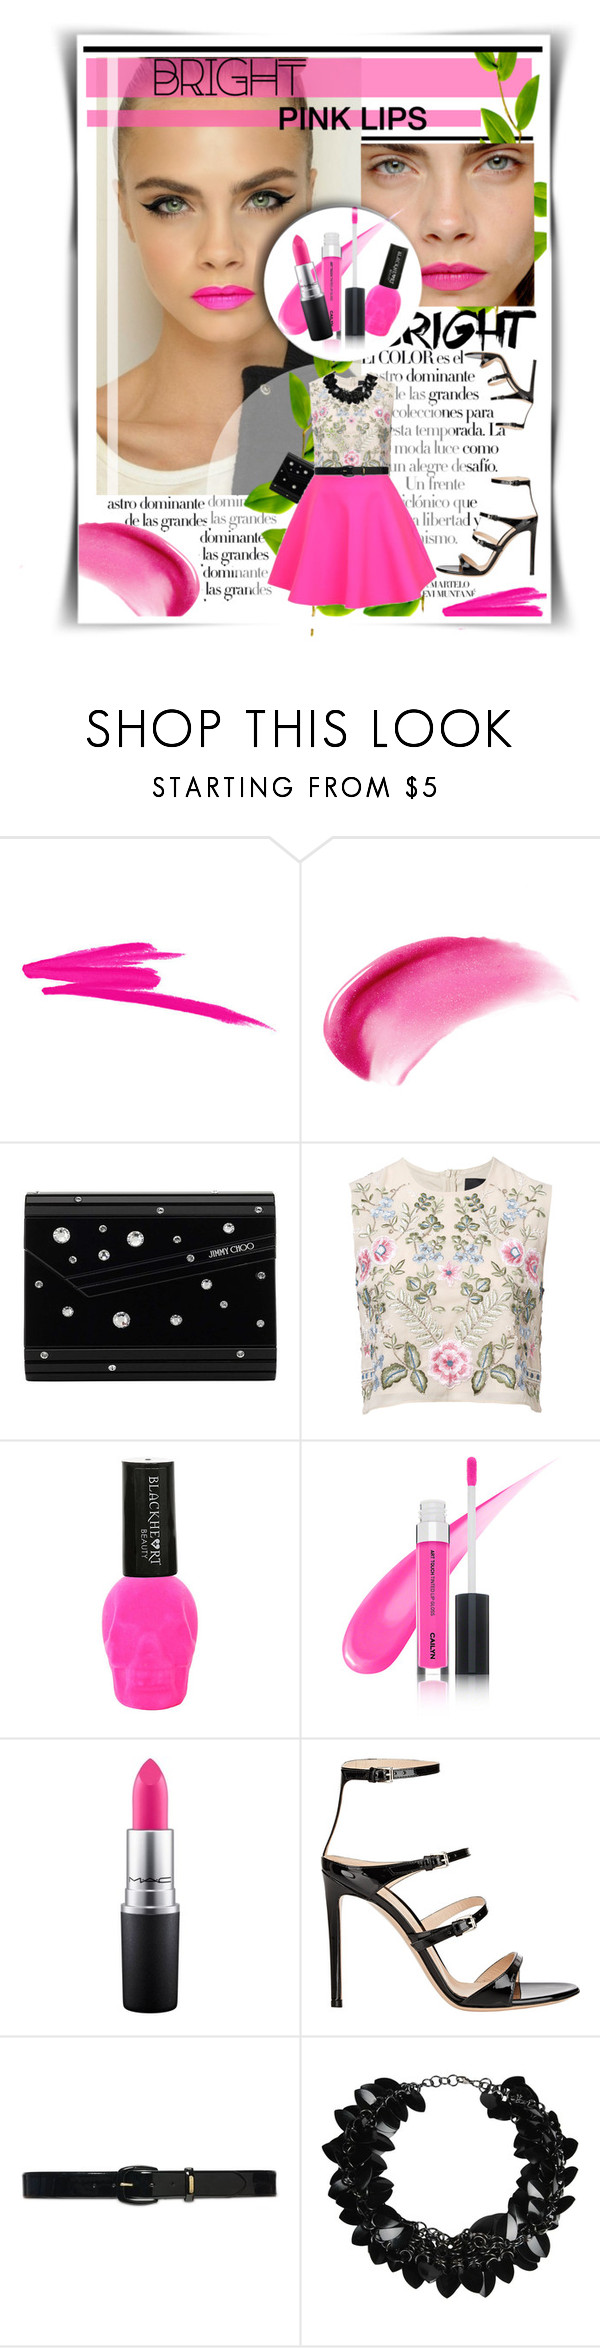 """""""Bright Pink Lips"""" by mymy ❤ liked on Polyvore featuring beauty, Arco, NARS Cosmetics, Jimmy Choo, Needle & Thread, UNIF, MAC Cosmetics, Gianvito Rossi, Lauren Ralph Lauren and First People First"""